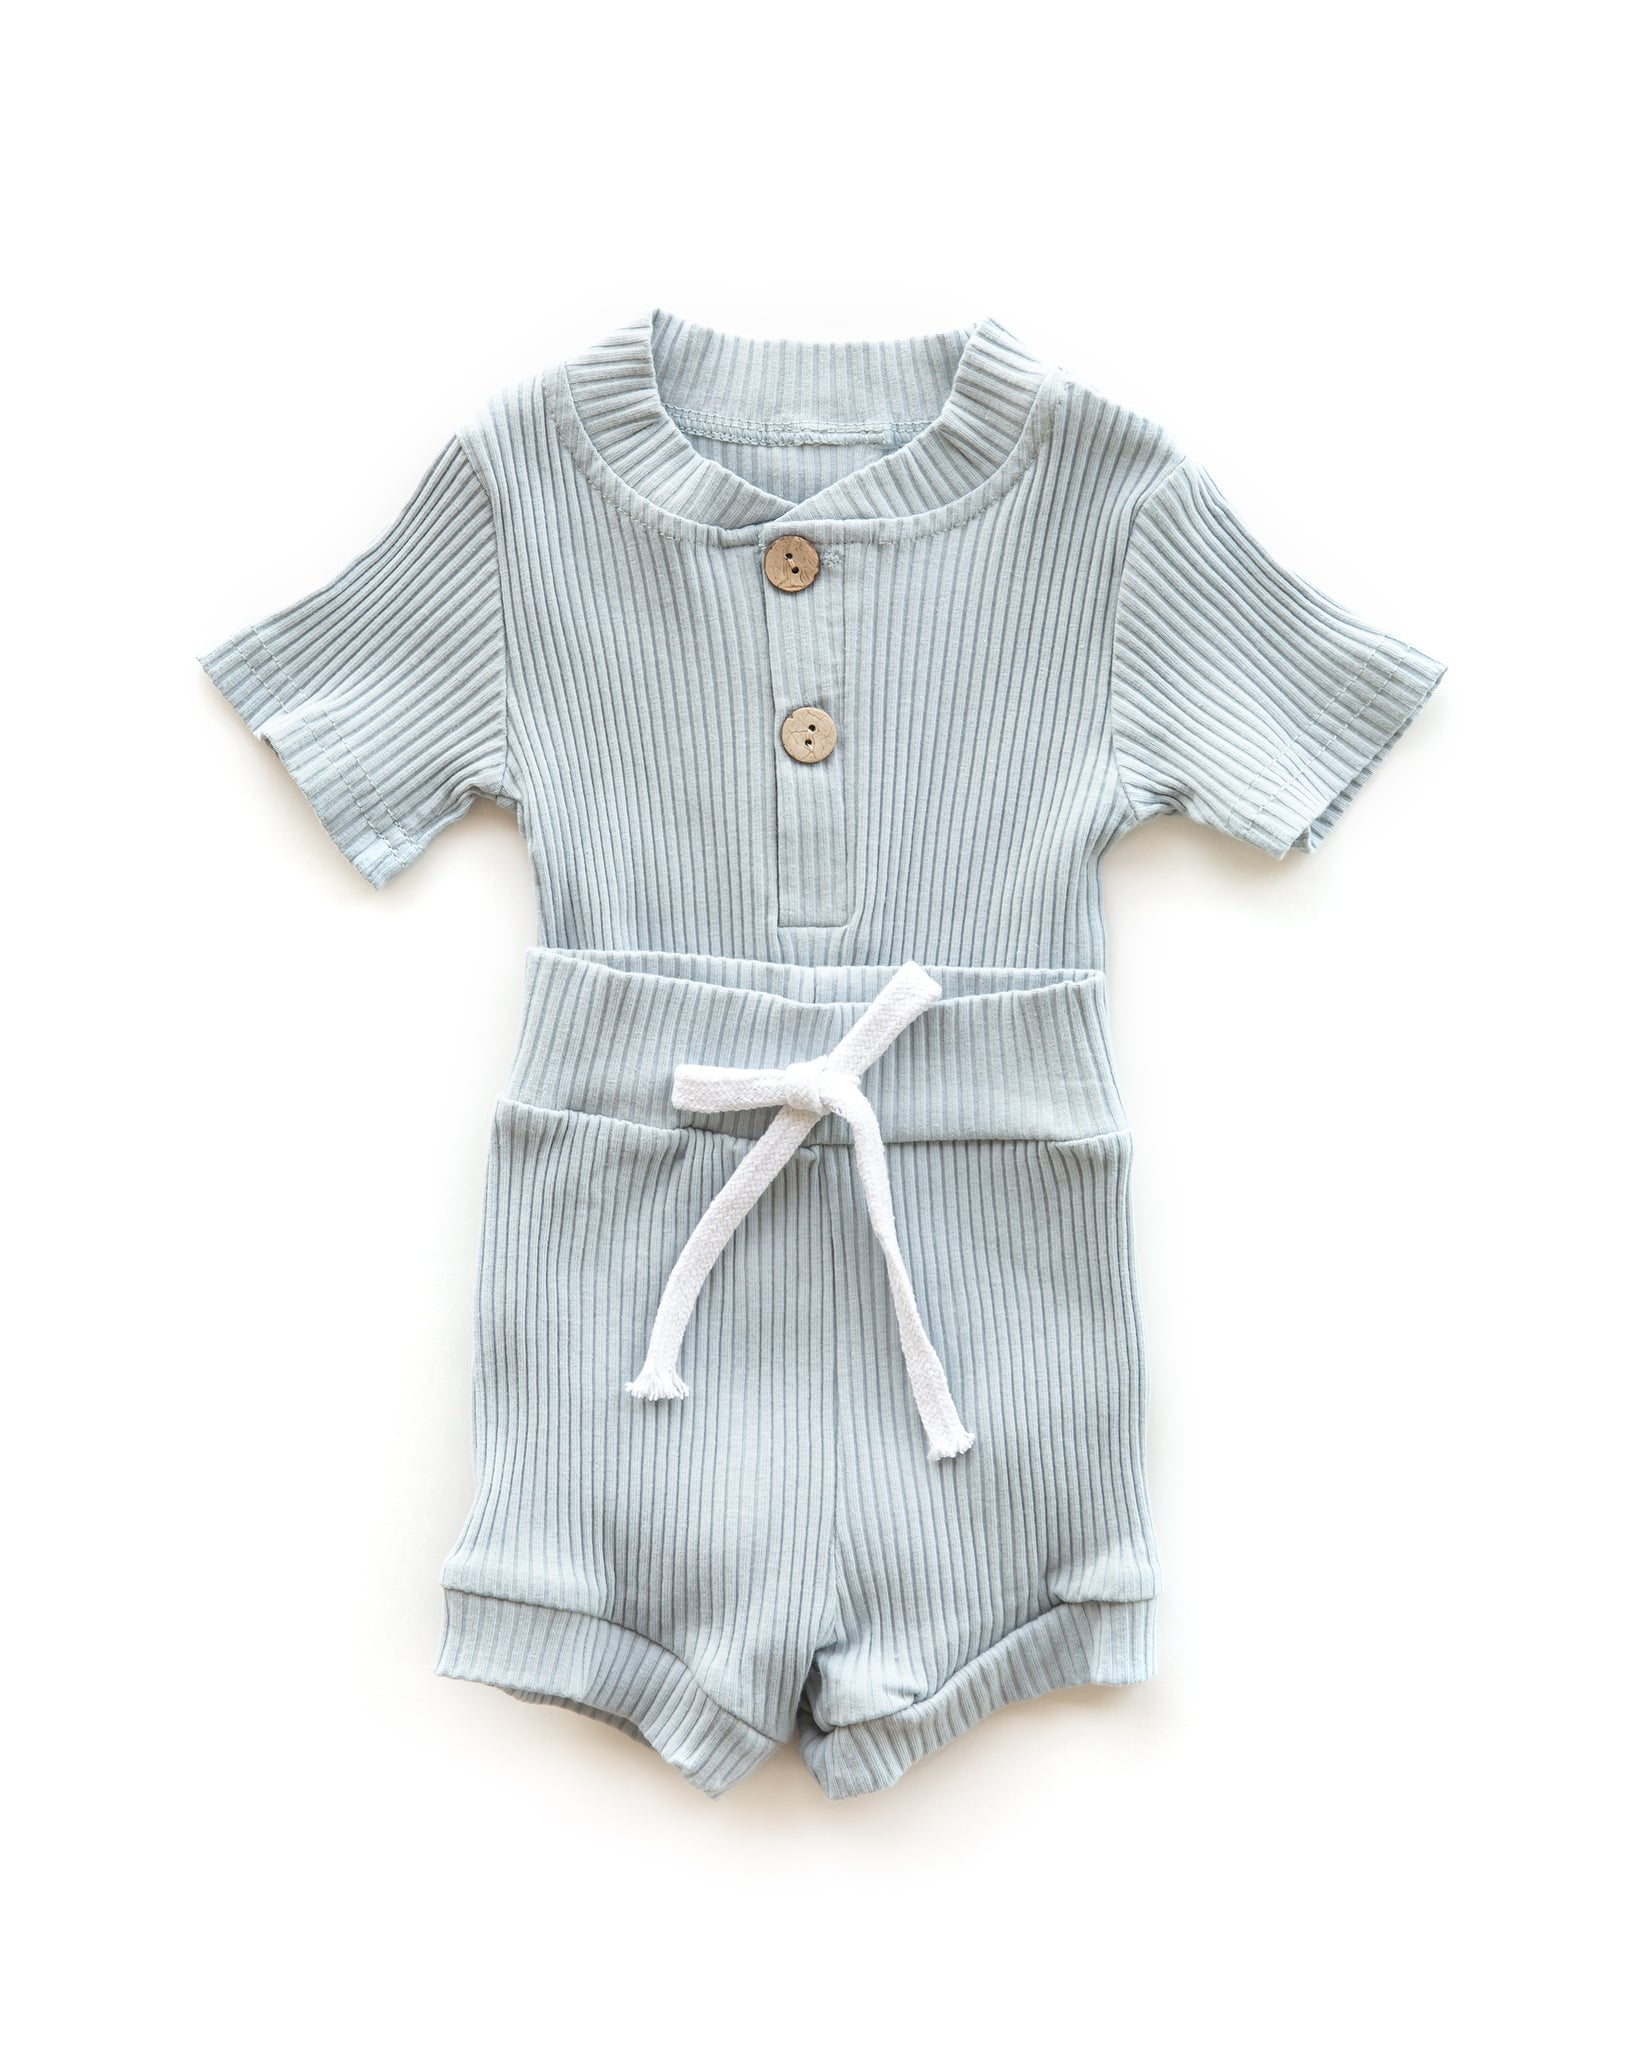 Lennon Outfit in Vintage Blue - Reverie Threads